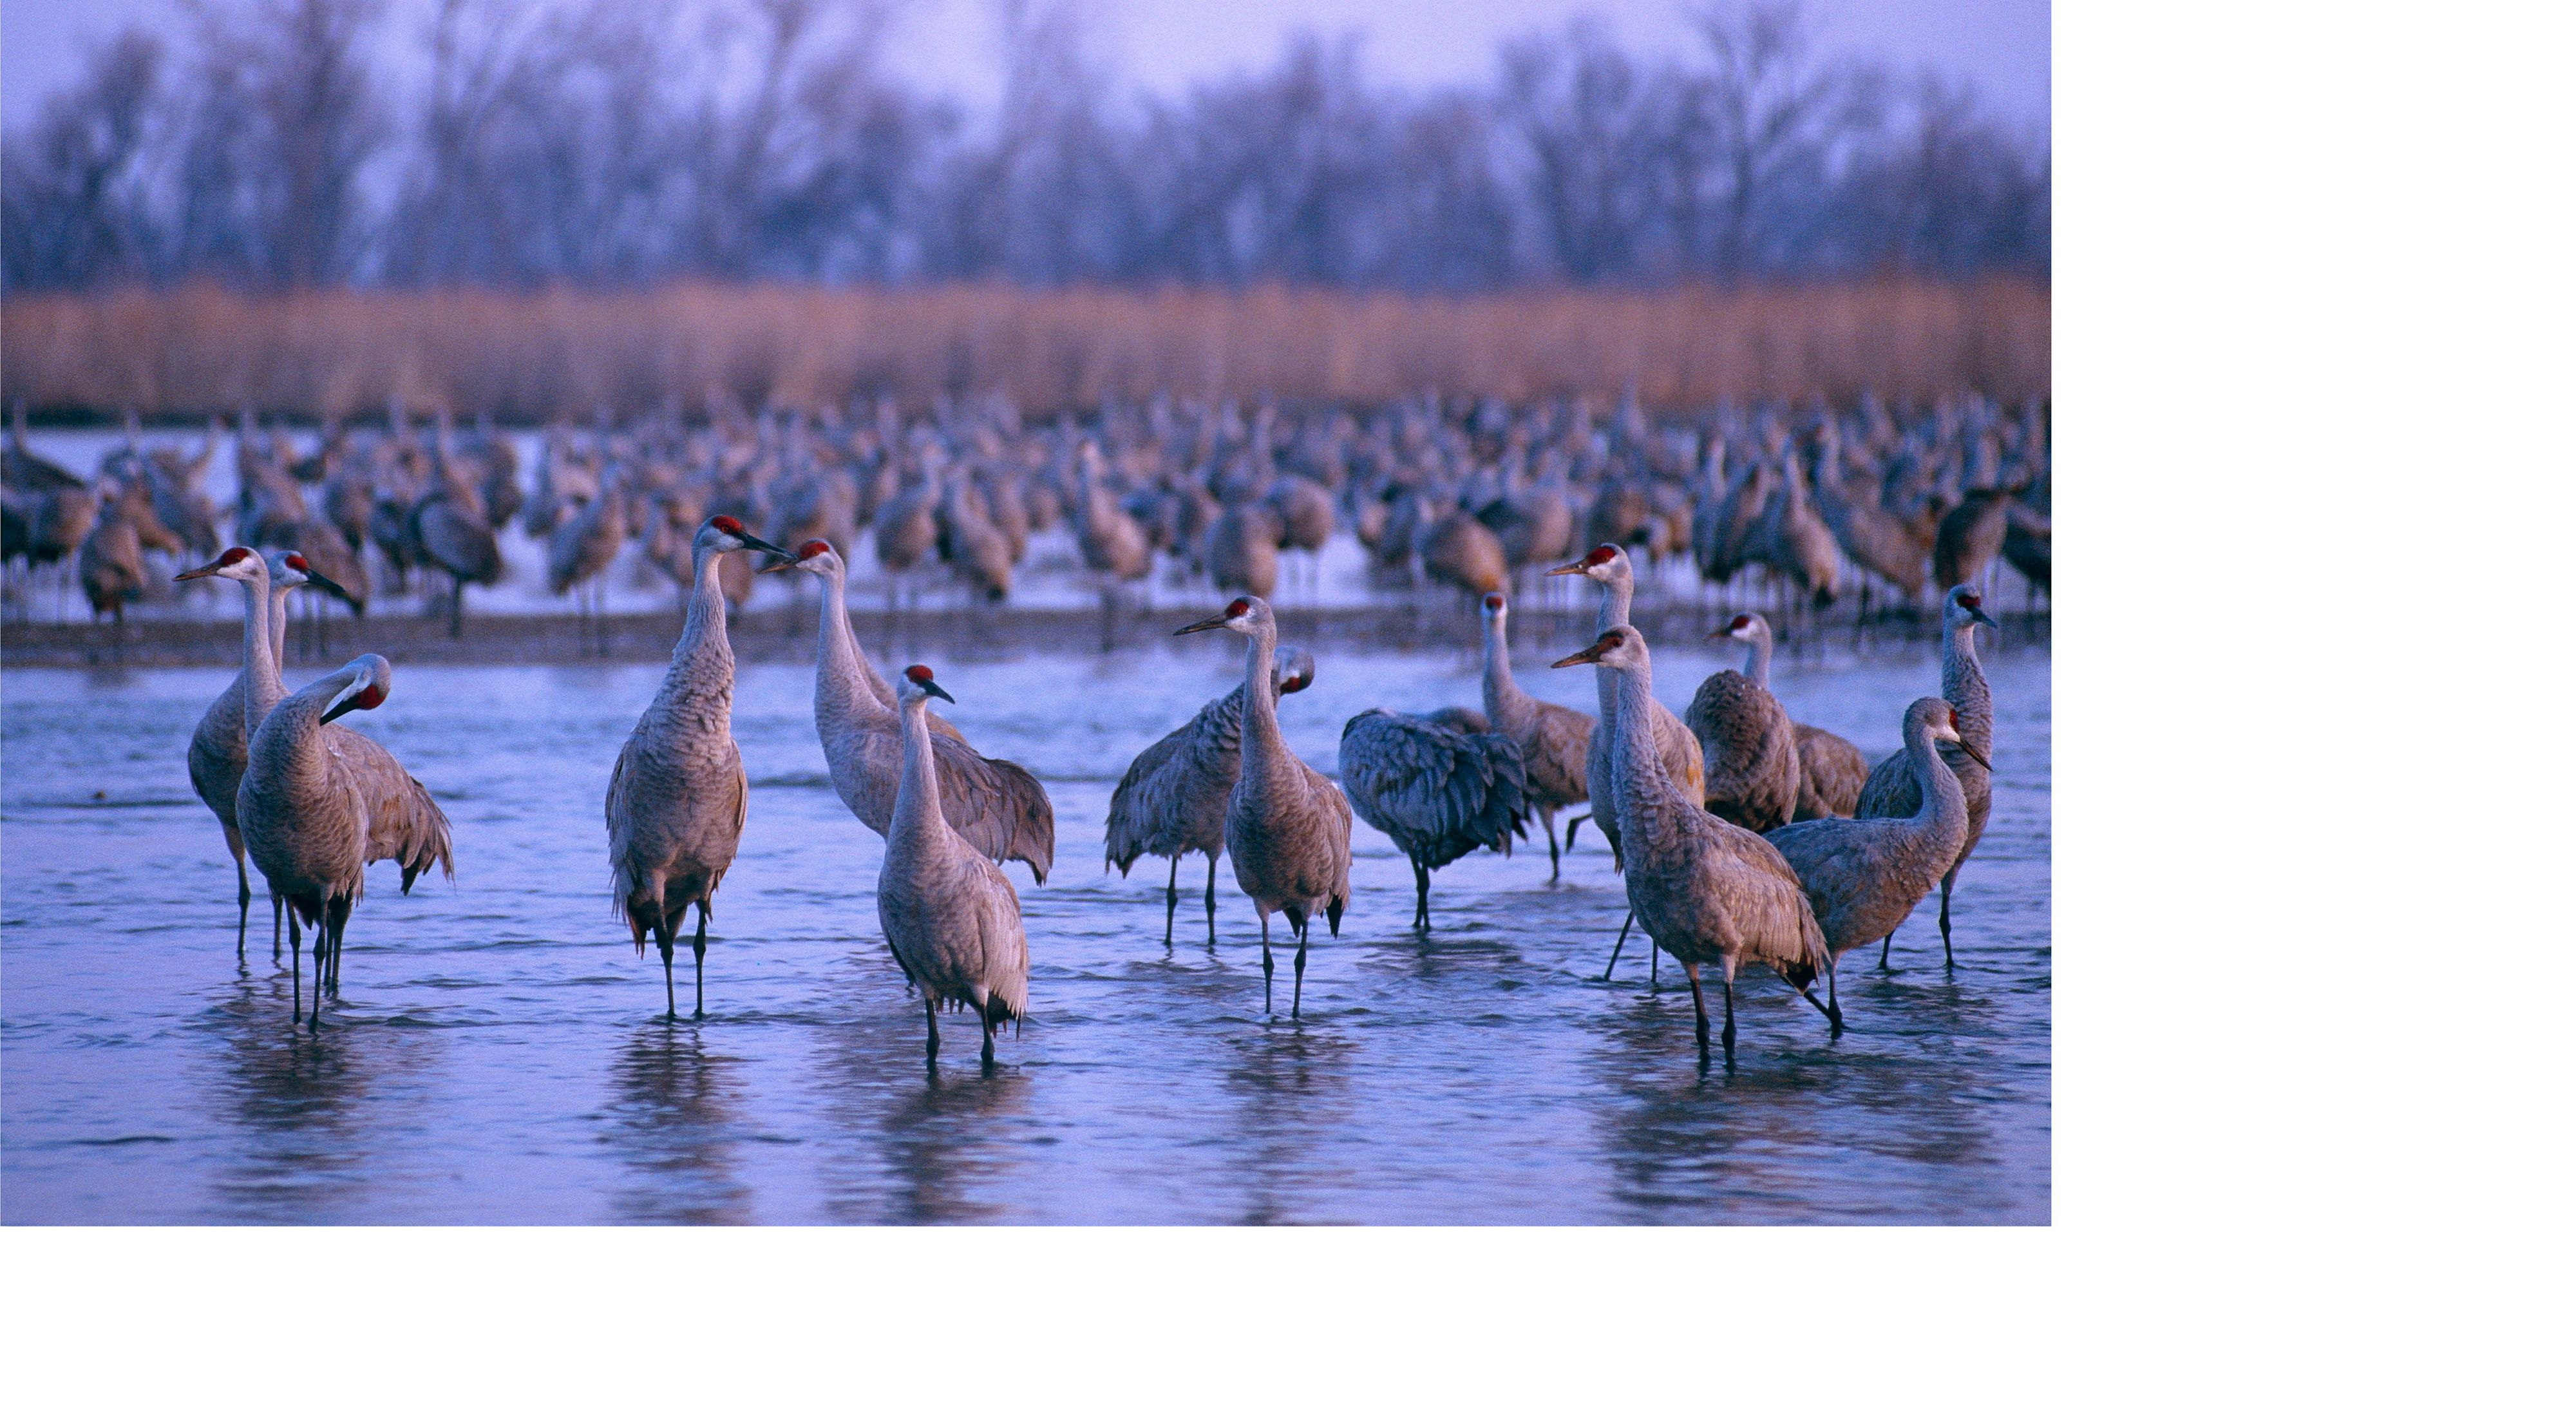 Sandhill cranes at roost on the Platte River